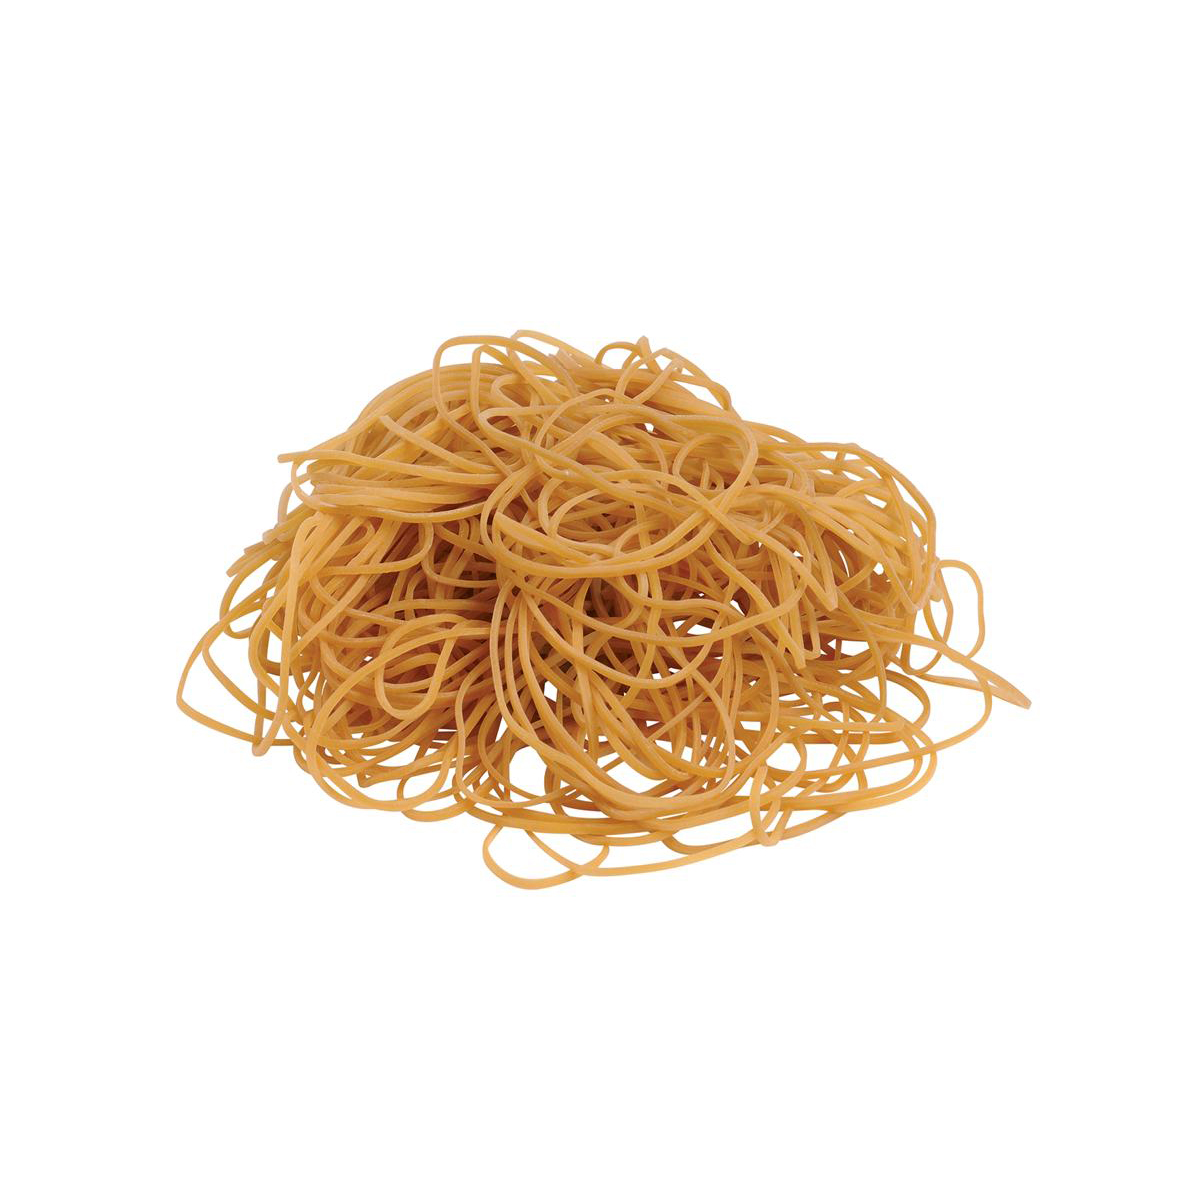 5 Star Office Rubber Bands No.18 Each 76x1.5mm Approx 1600 Bands Bag 0.454kg